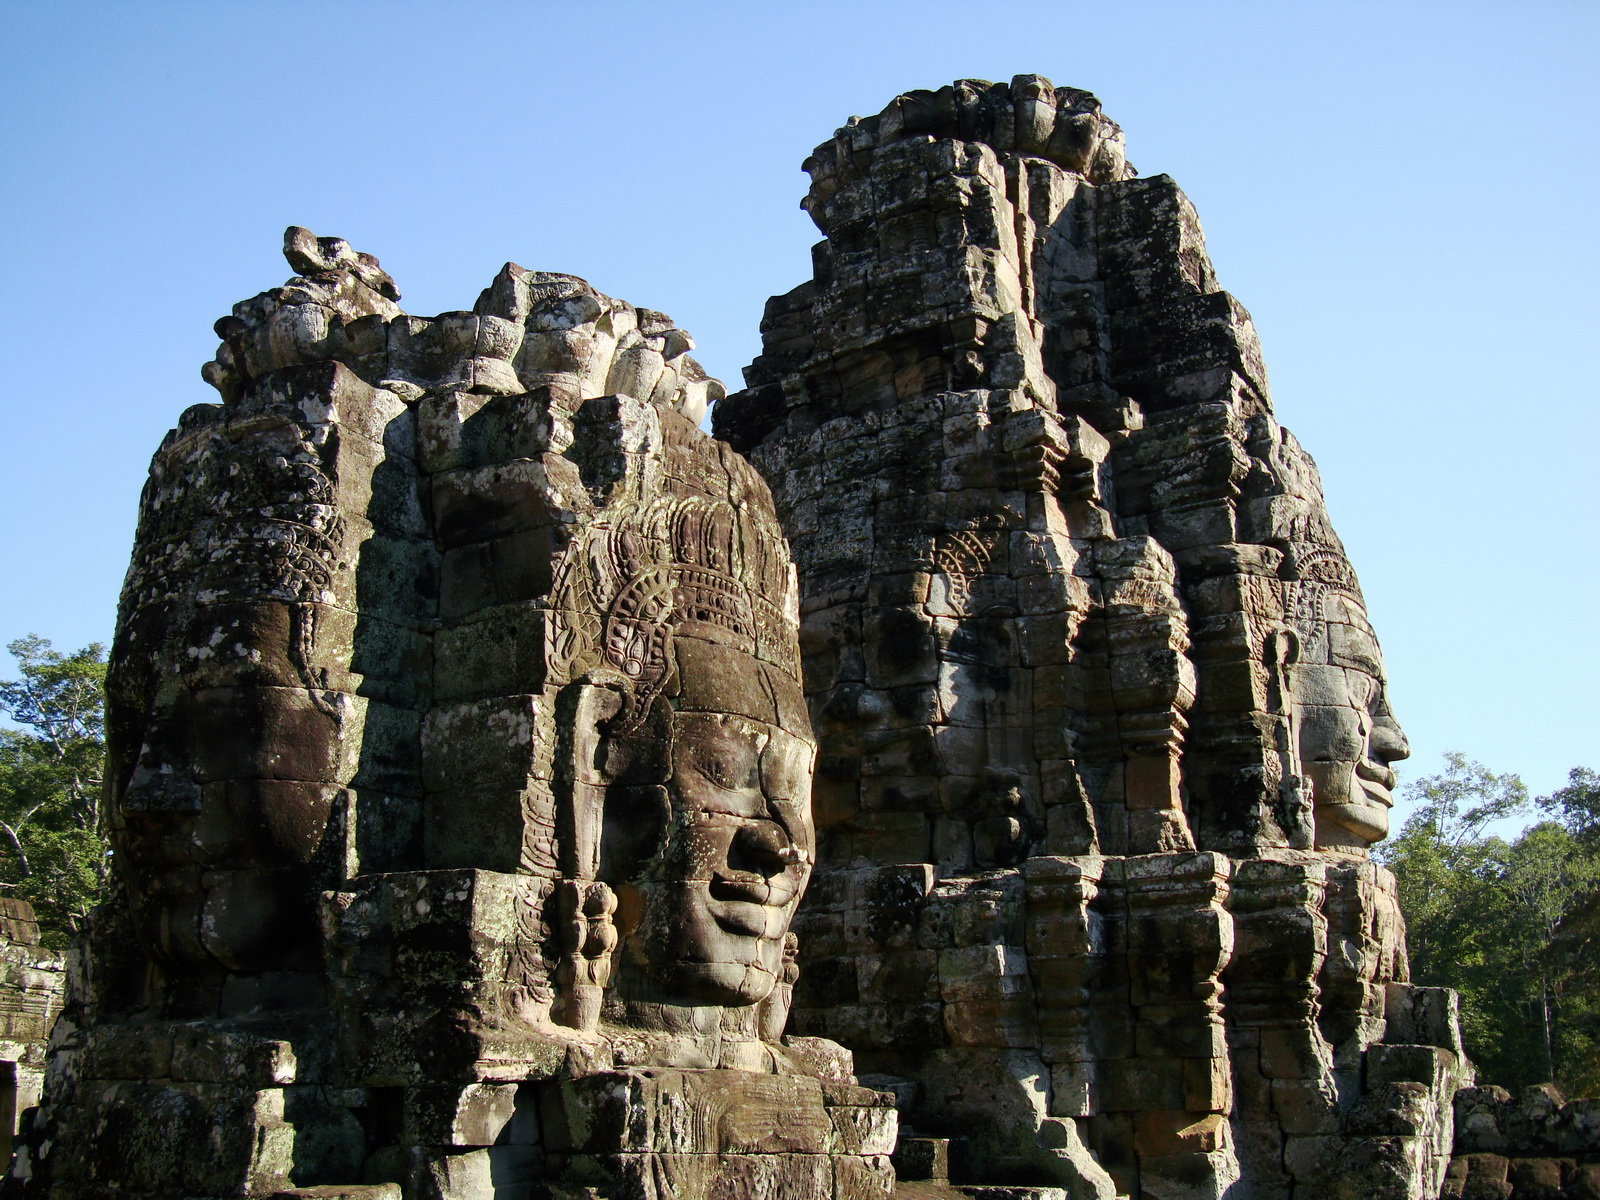 Bayon Temple NW inner gallery face towers Angkor Siem Reap 11